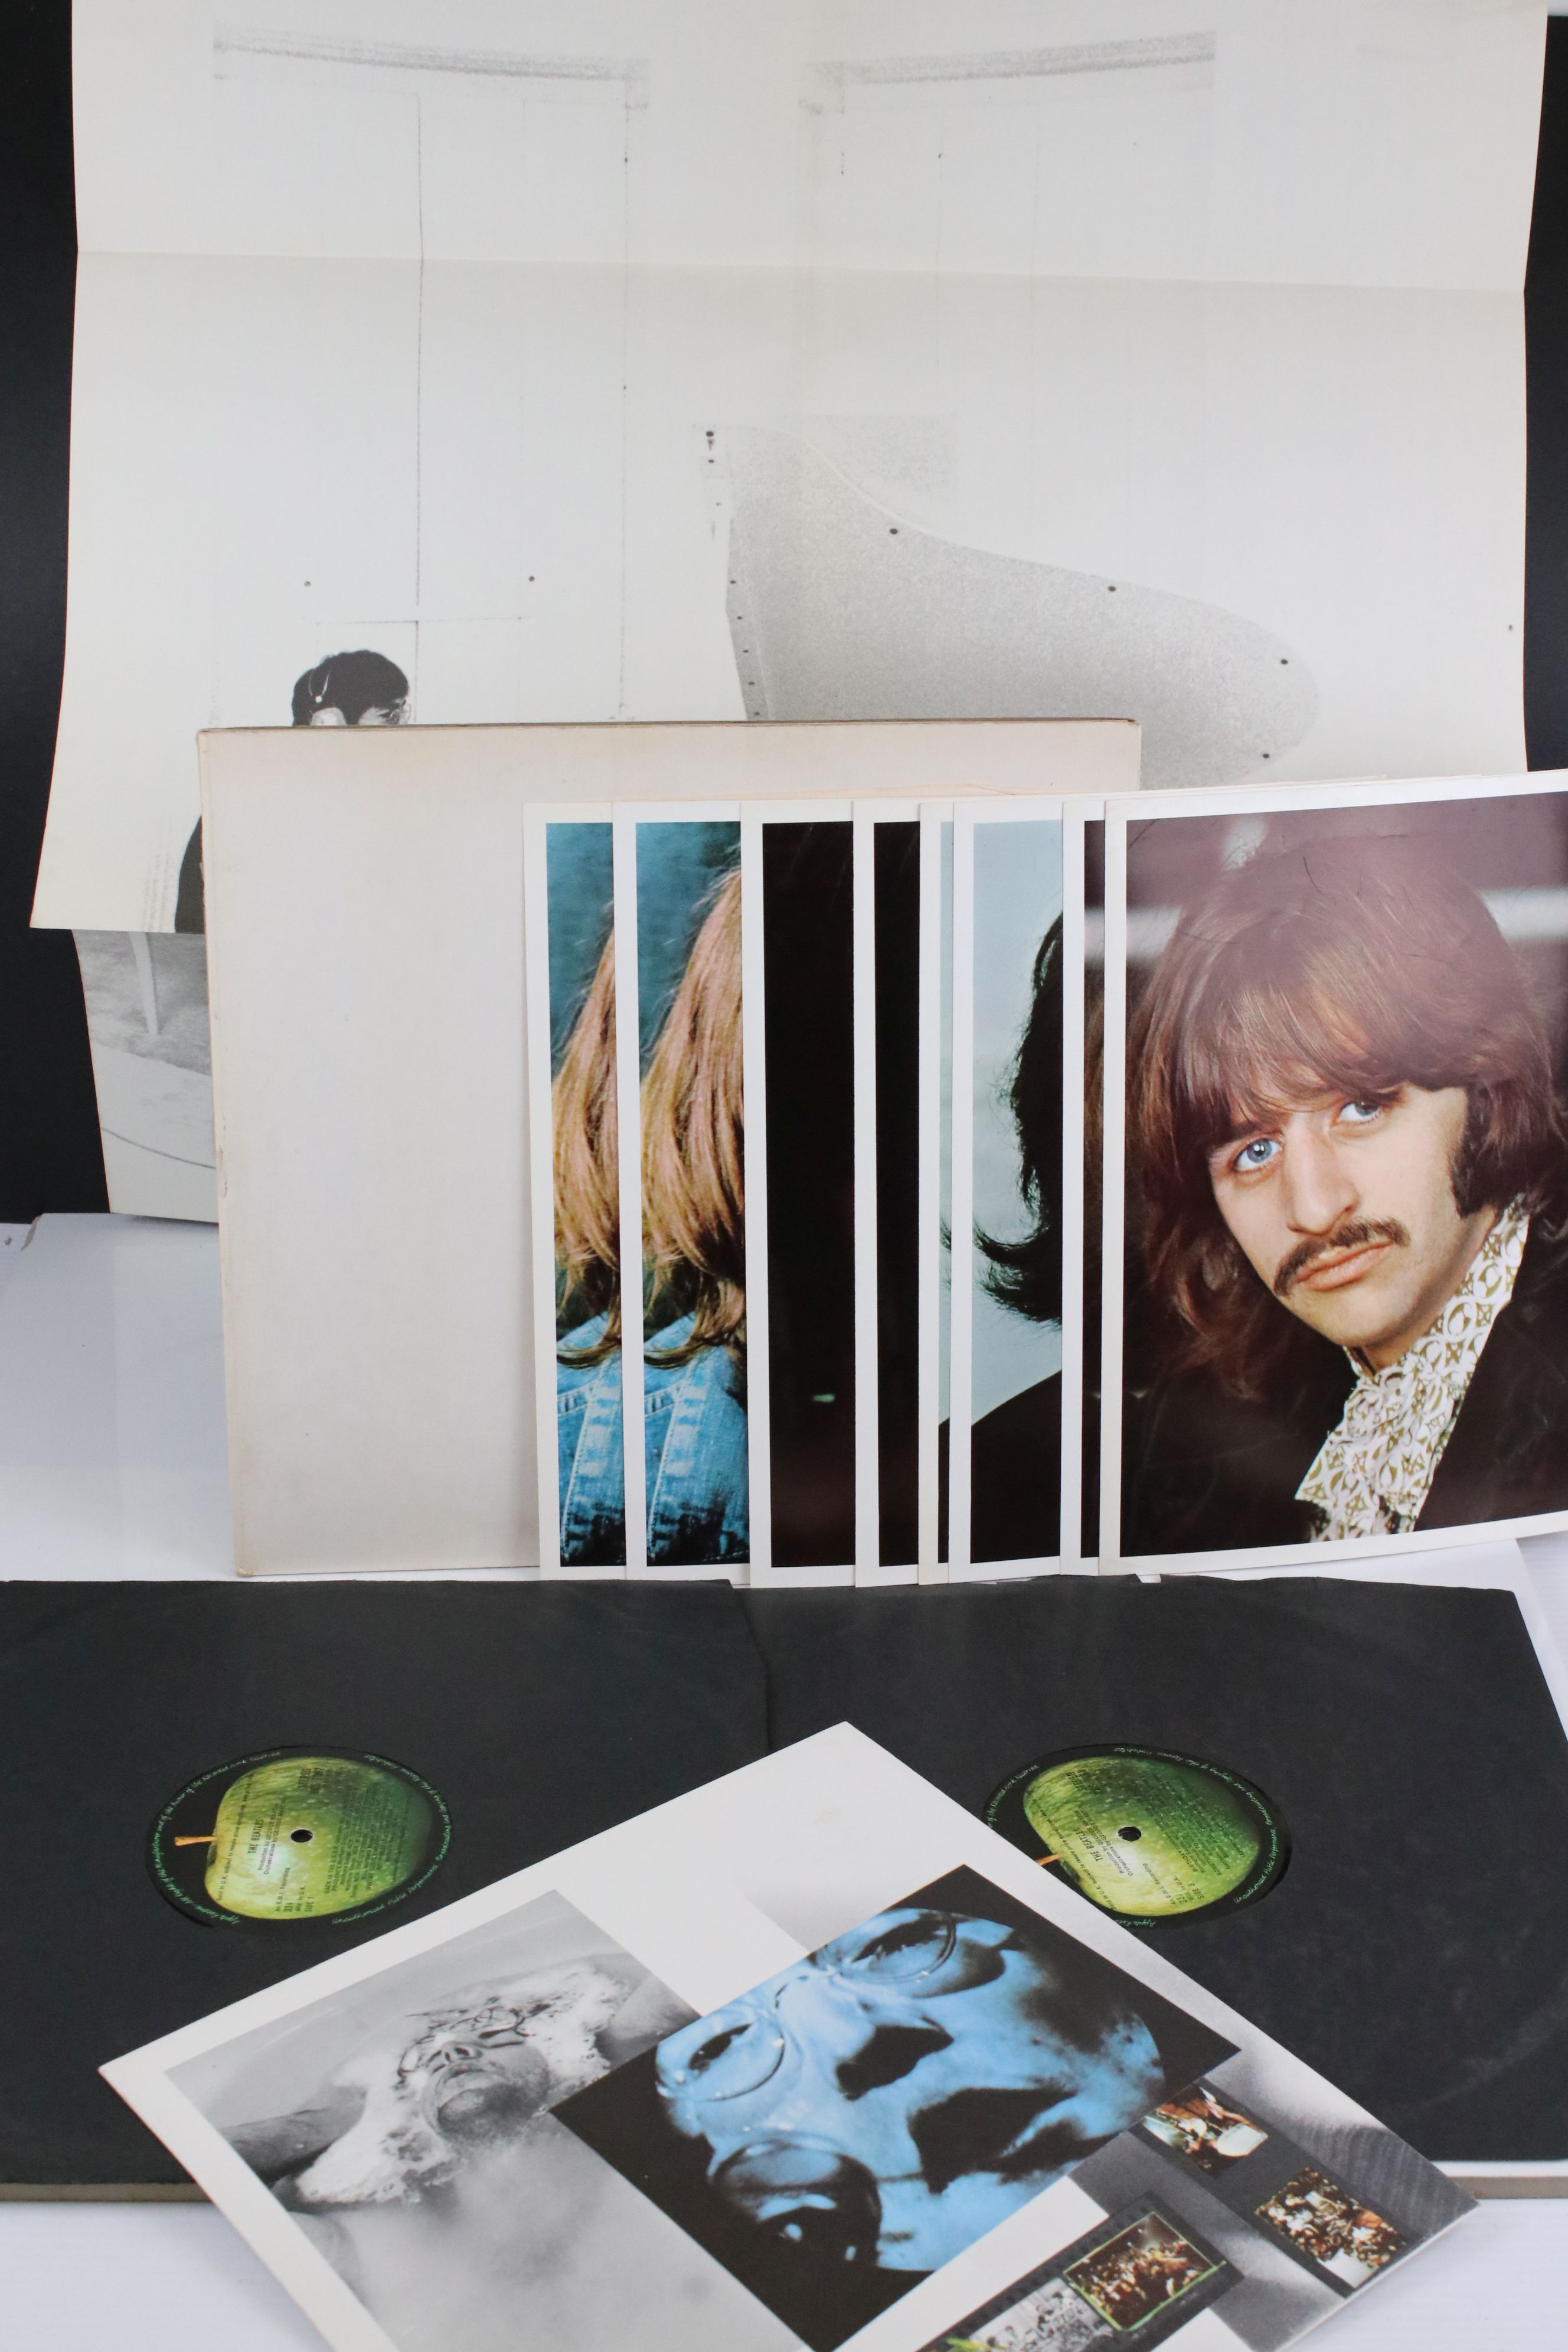 Vinyl - The Beatles White Album LP mono PMC7067-8, numbered 0001376 with 8 x coloured prints and